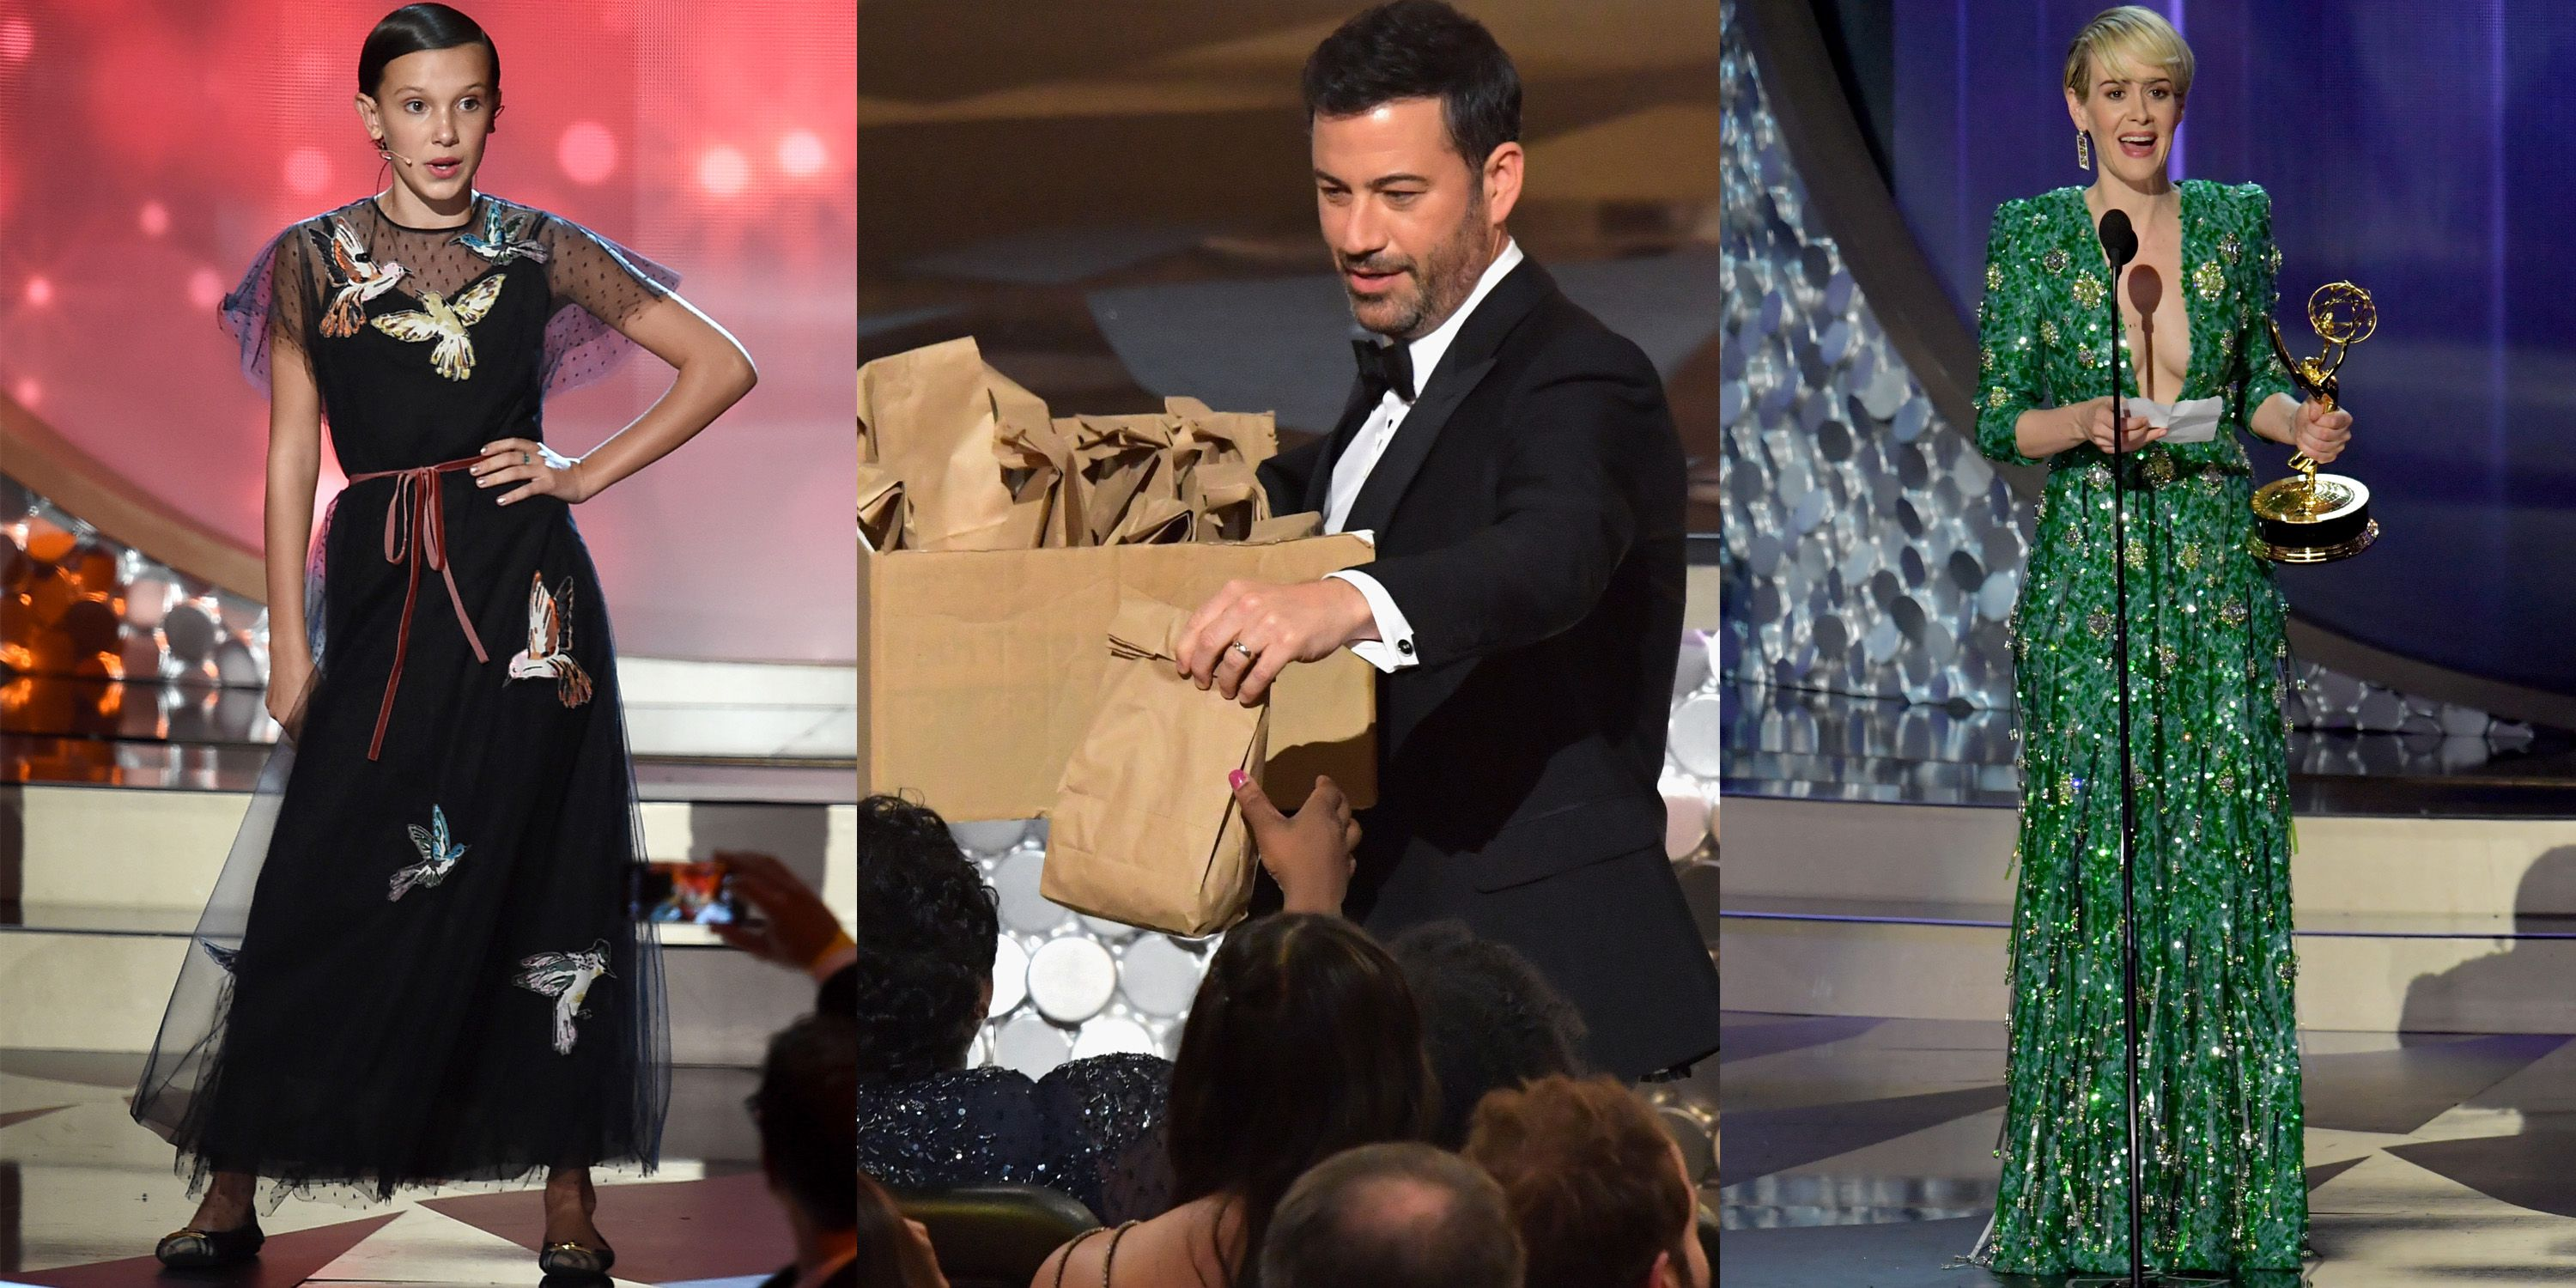 The Best Moments at the 2016 Emmy Awards - Emmys 2016 Recap